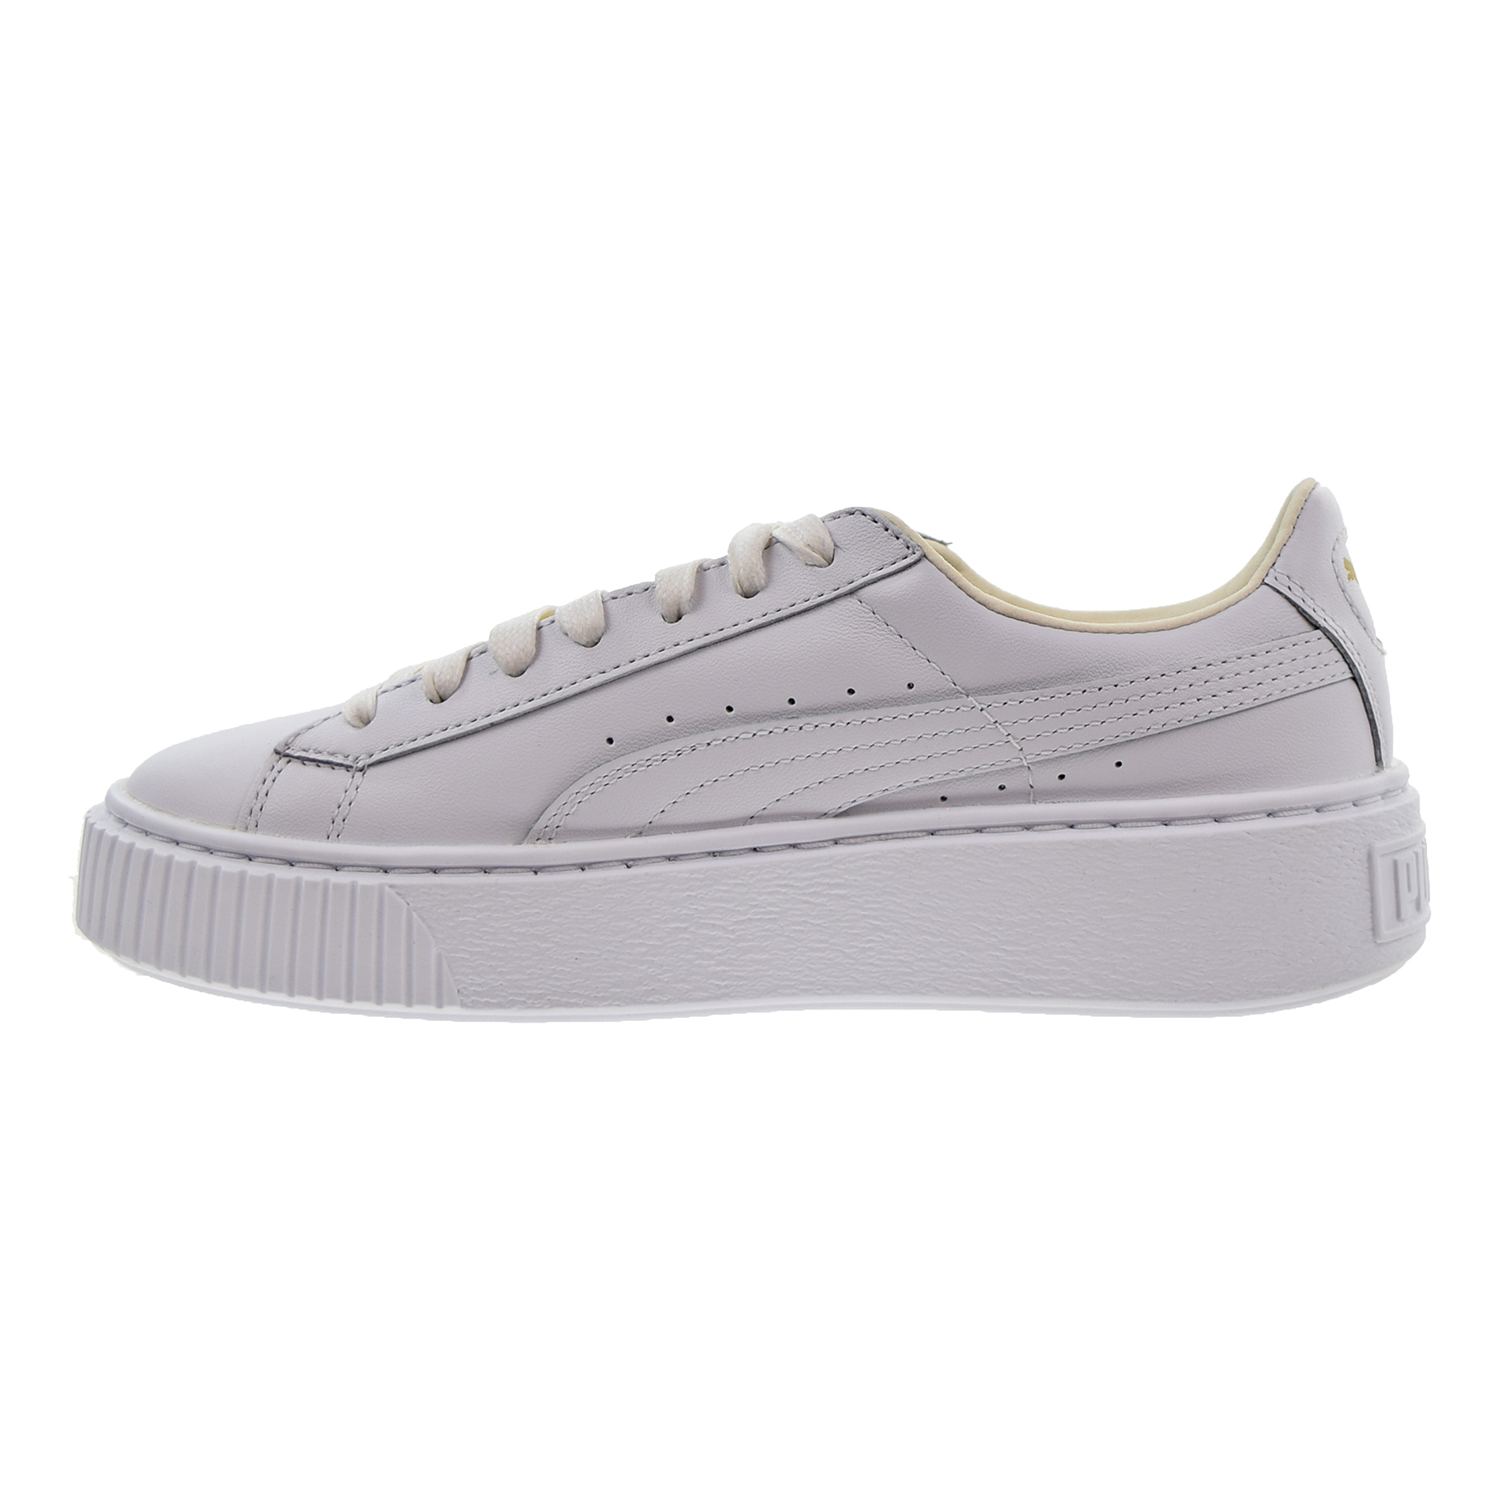 7afe10eecd PUMA - Puma Basket Platform Core Women s Shoes Puma White Gold 364040-04 -  Walmart.com